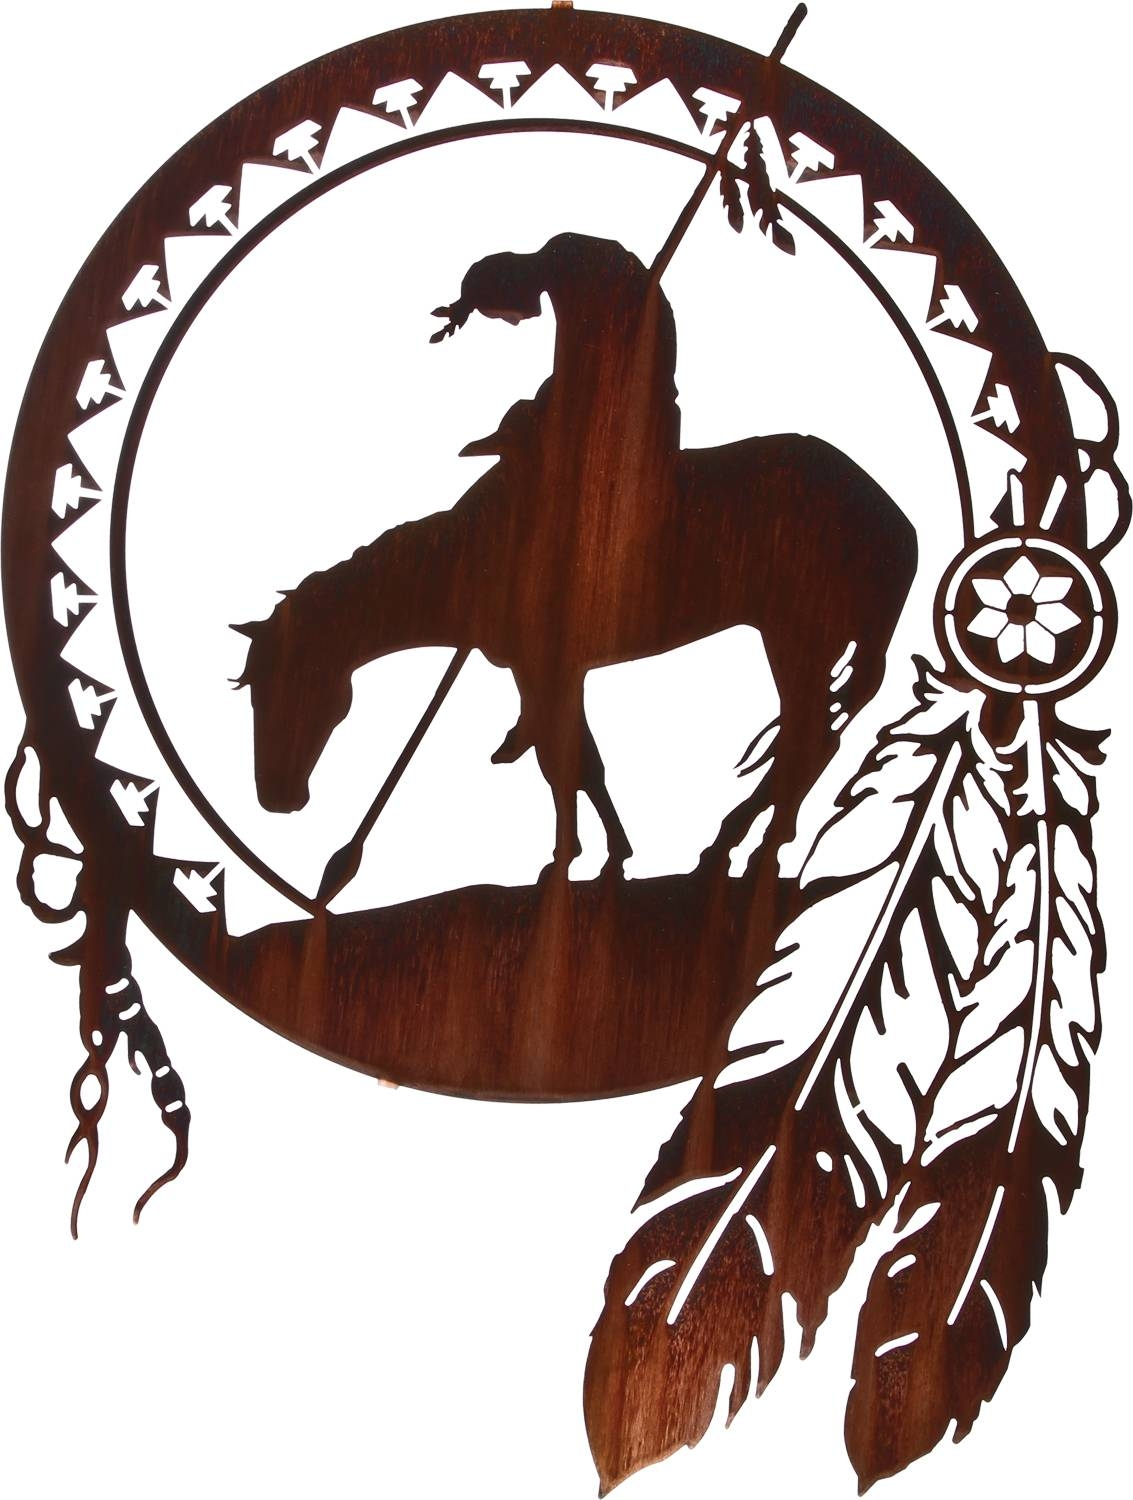 Native American Indian Wall Art, Indian Wall Hangings for Recent Native American Metal Wall Art